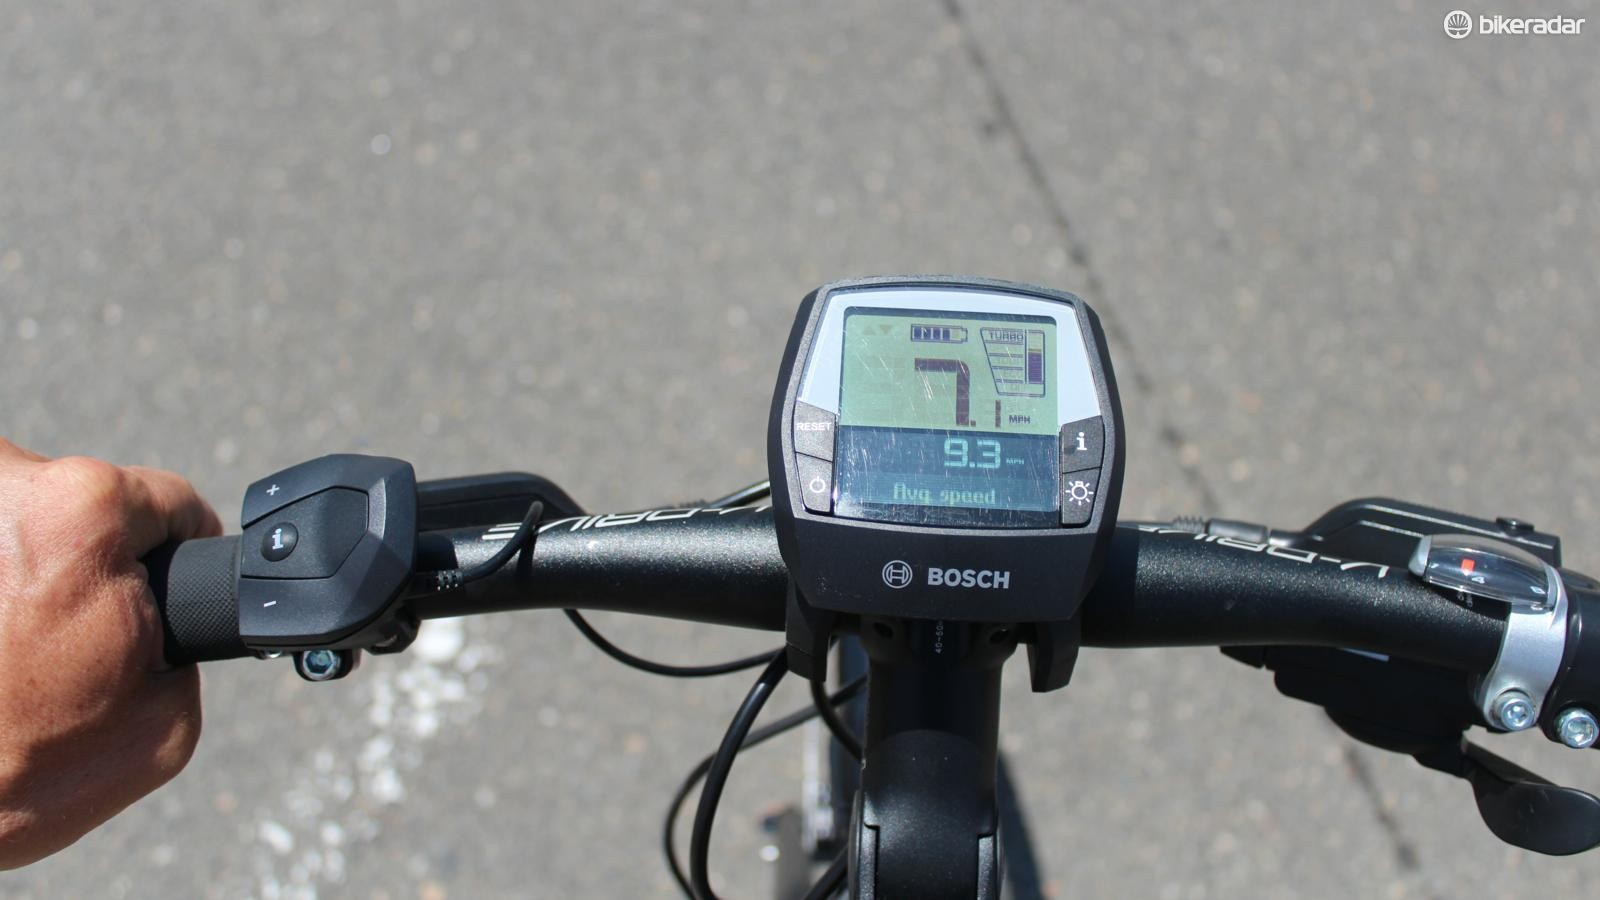 The Gazelle CityZen cockpit features traditional gear shifting on the right, electric-power assistance controls on the left, and the dashboard computer in the center